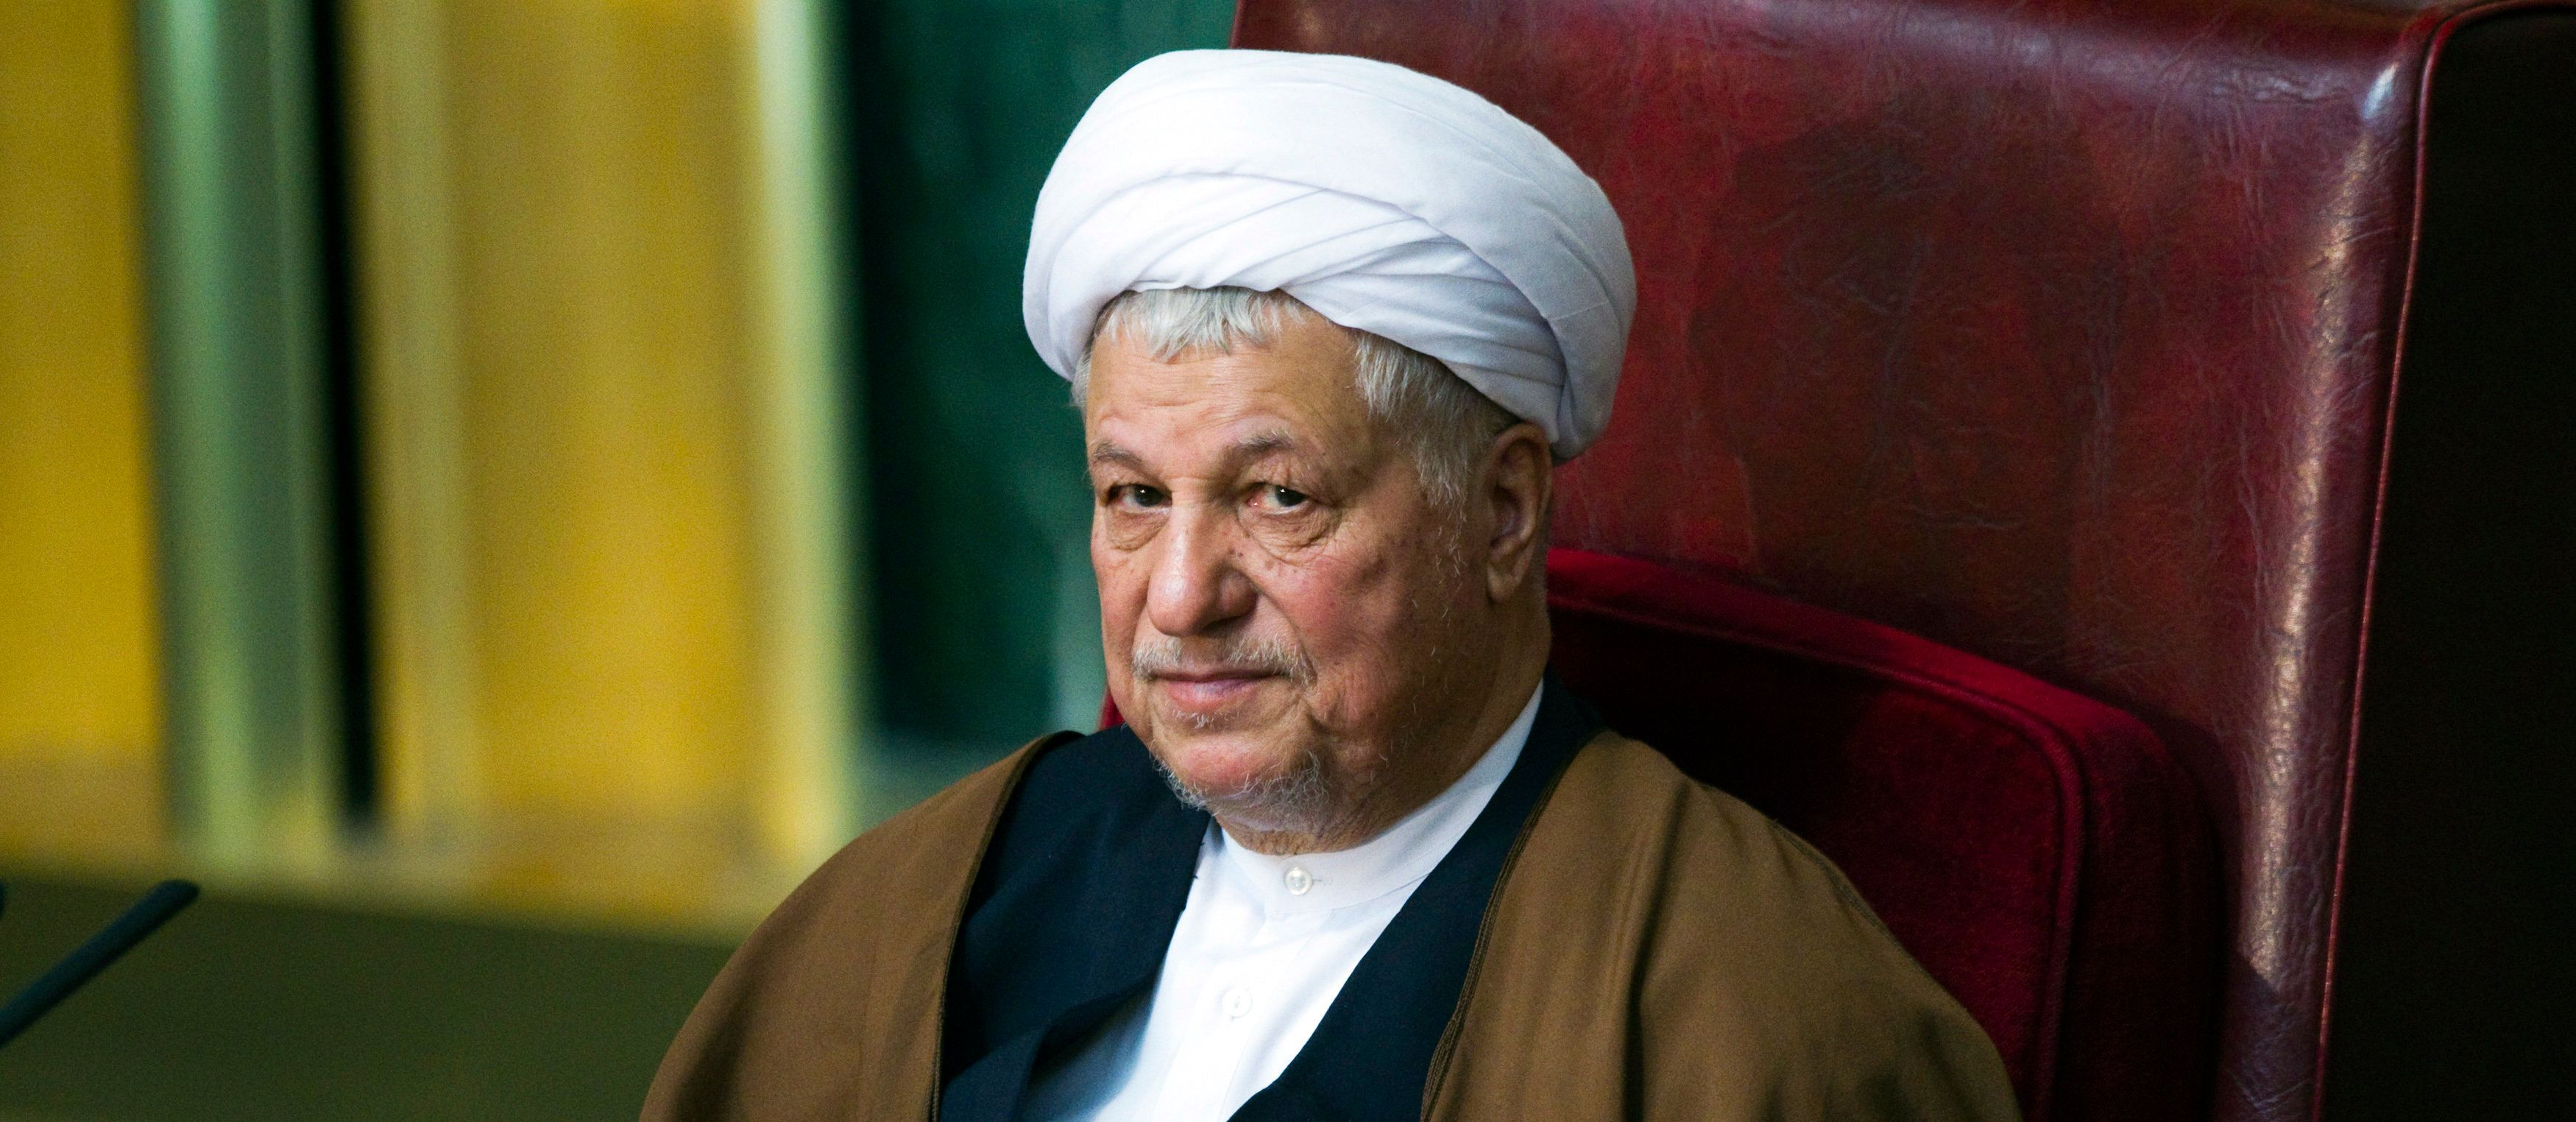 EDITORS' NOTE: Reuters and other foreign media are subject to Iranian restrictions on leaving the office to report, film or take pictures in Tehran.  Former Iranian president Akbar Hashemi Rafsanjani attends Iran's Assembly of Experts' biannual meeting in Tehran March 8, 2011. Rafsanjani lost his position on Tuesday as head of an important state clerical body after hardliners criticised him for being too close to the reformist opposition.   REUTERS/Raheb Homavandi (IRAN - Tags: POLITICS)